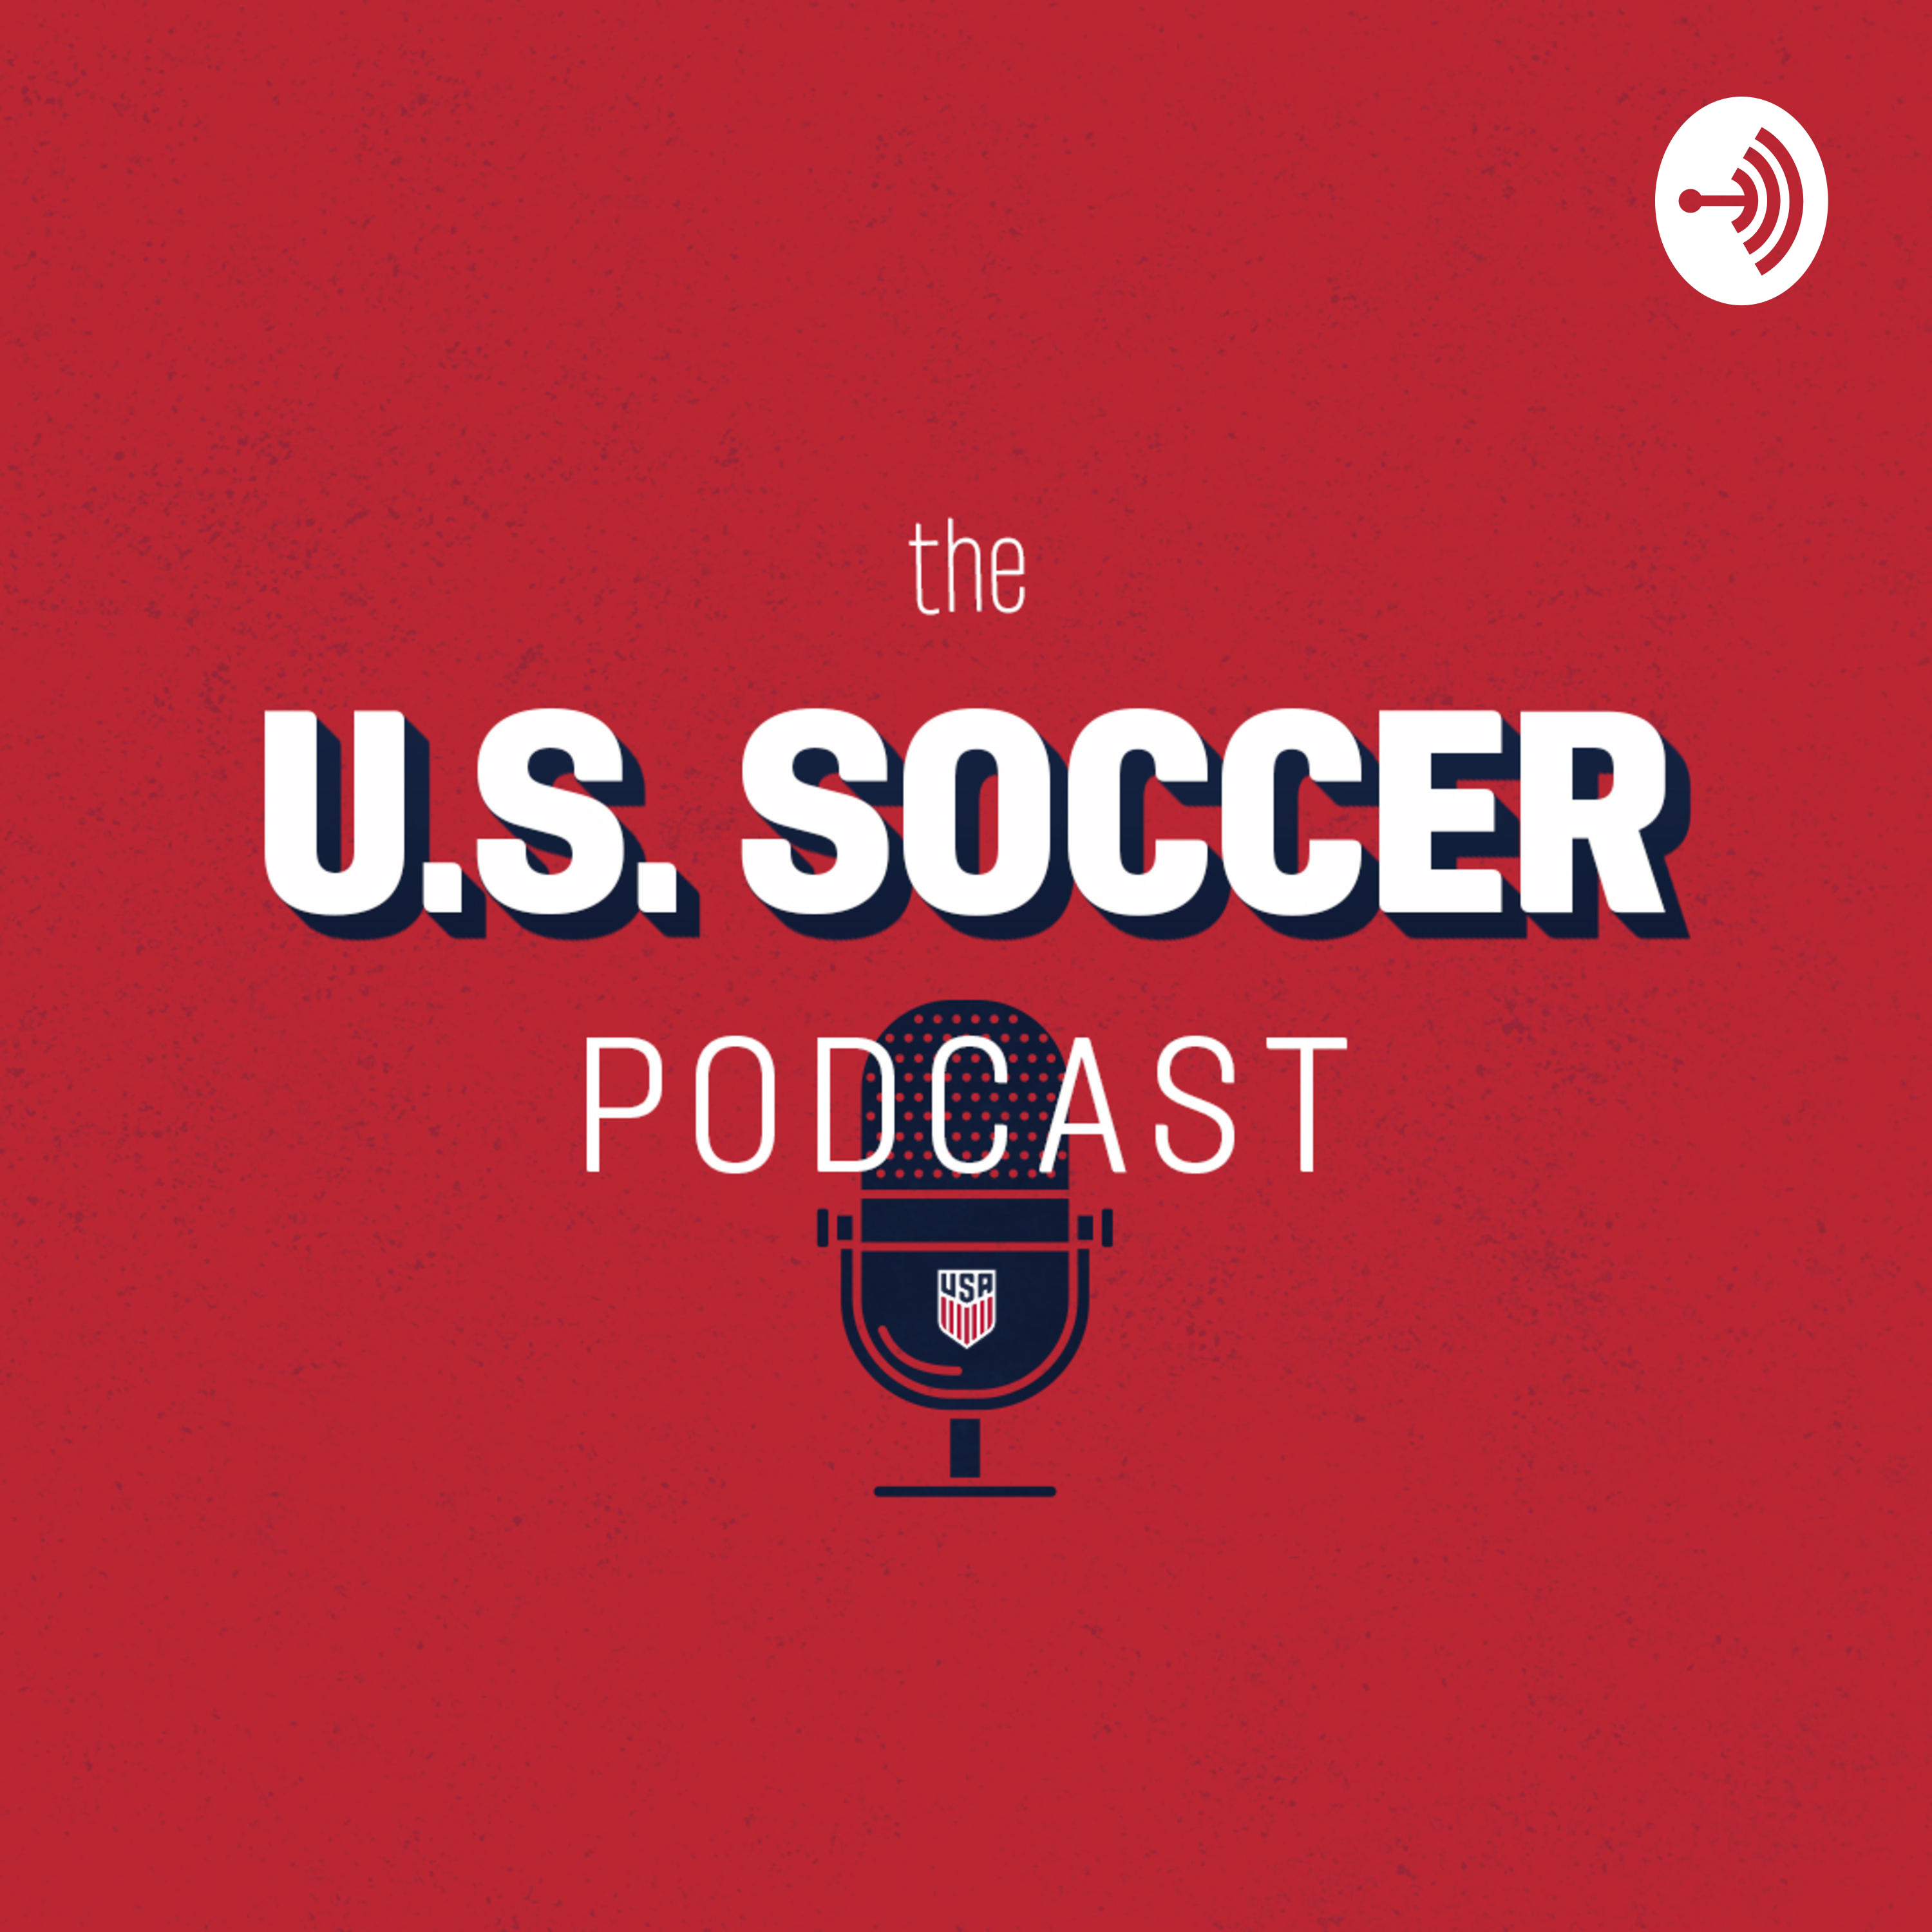 Virtual Roundtable on Racism with Crystal Dunn, Cobi Jones, Jessica McDonald and Zack Steffen